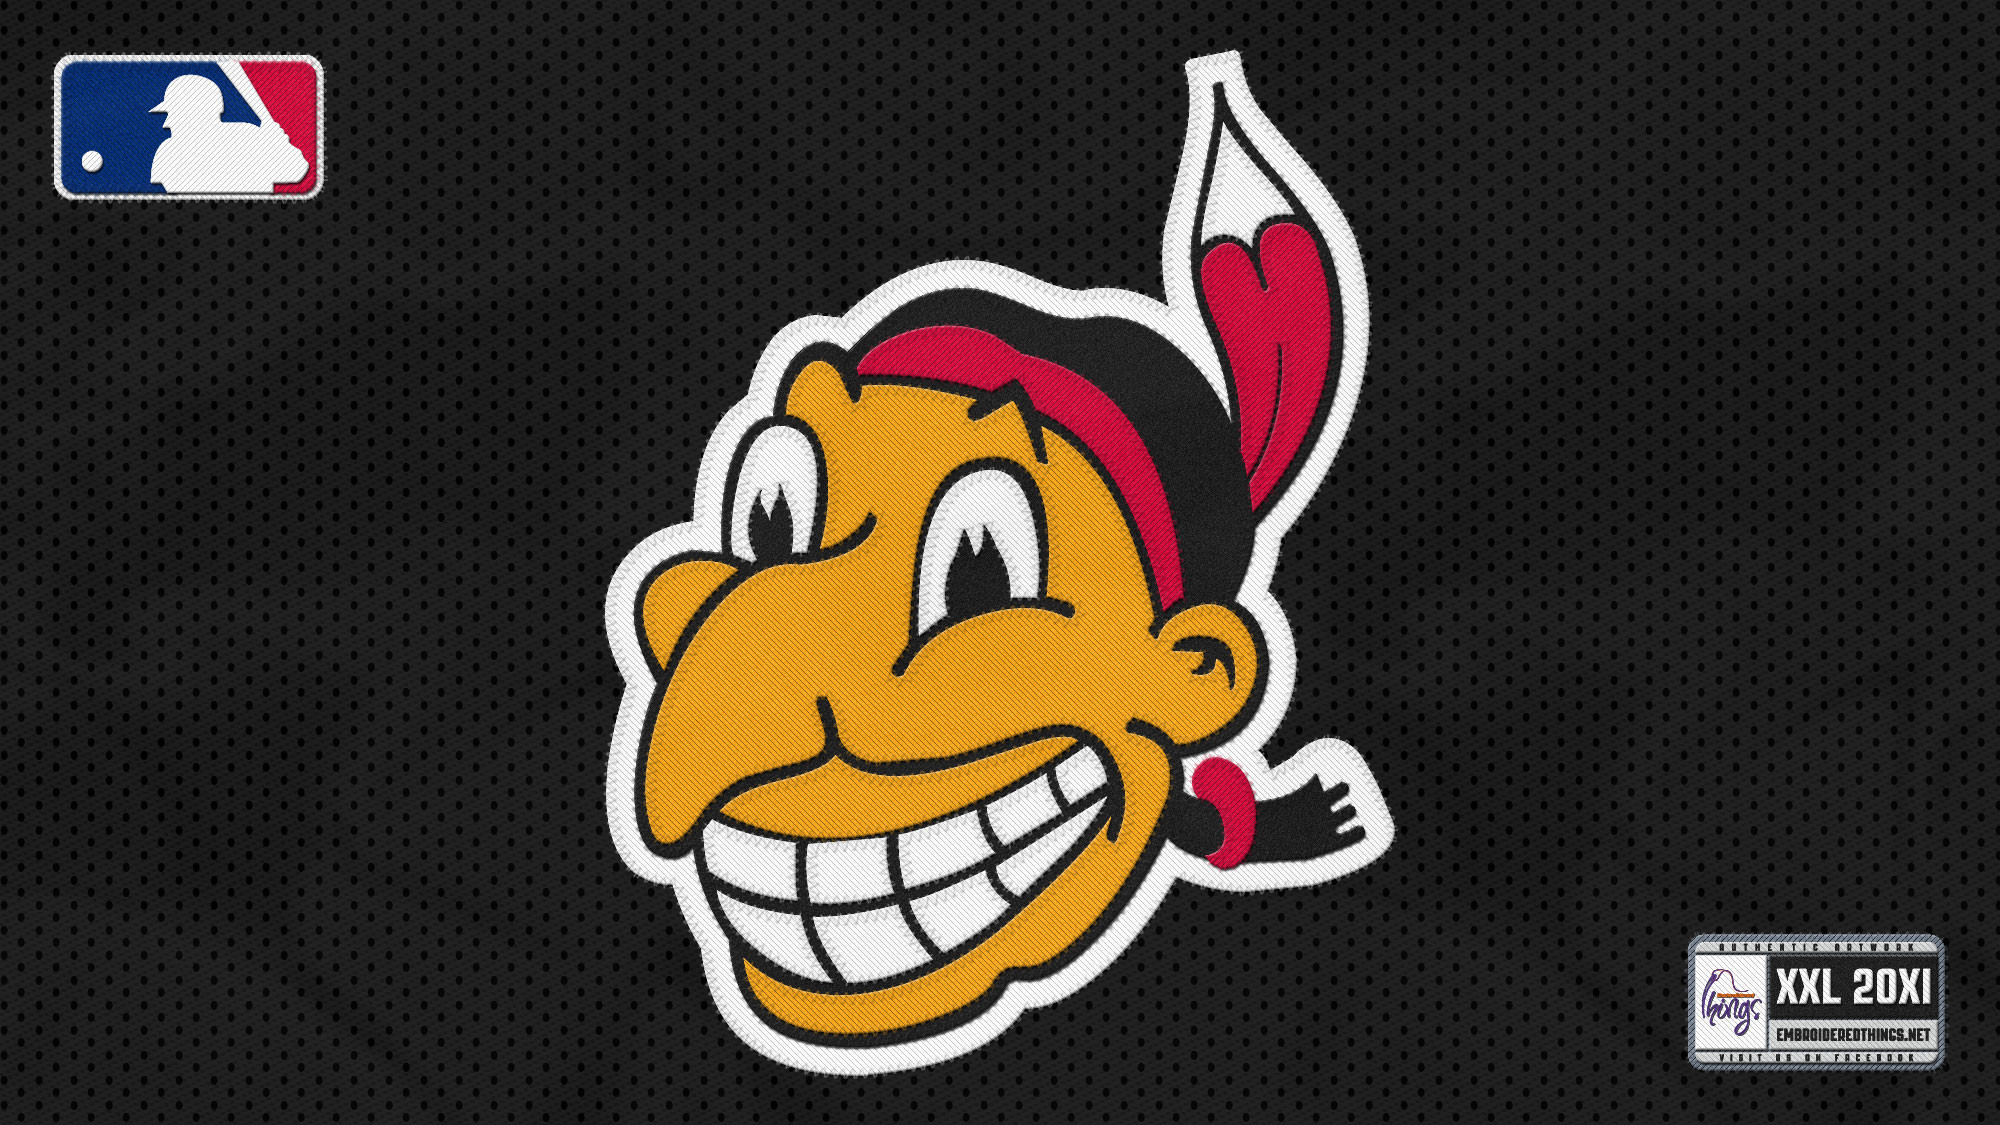 Nw Cleveland Indians Wallpaper | Full HD Pictures